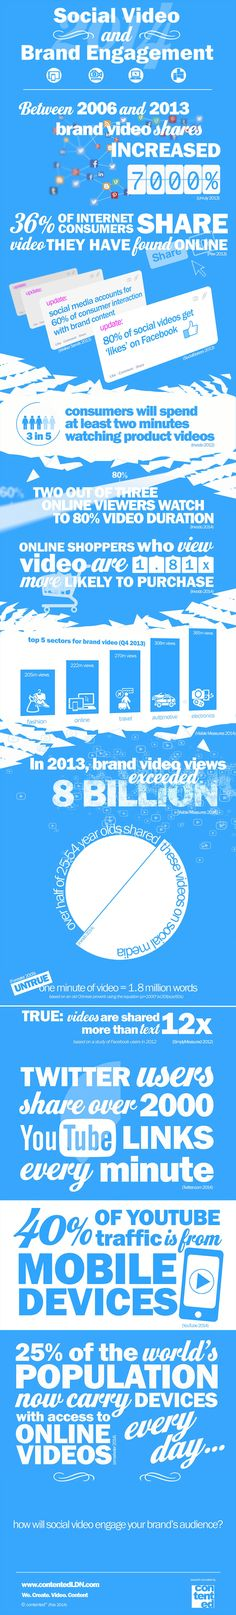 Social Video and Brand Engagement